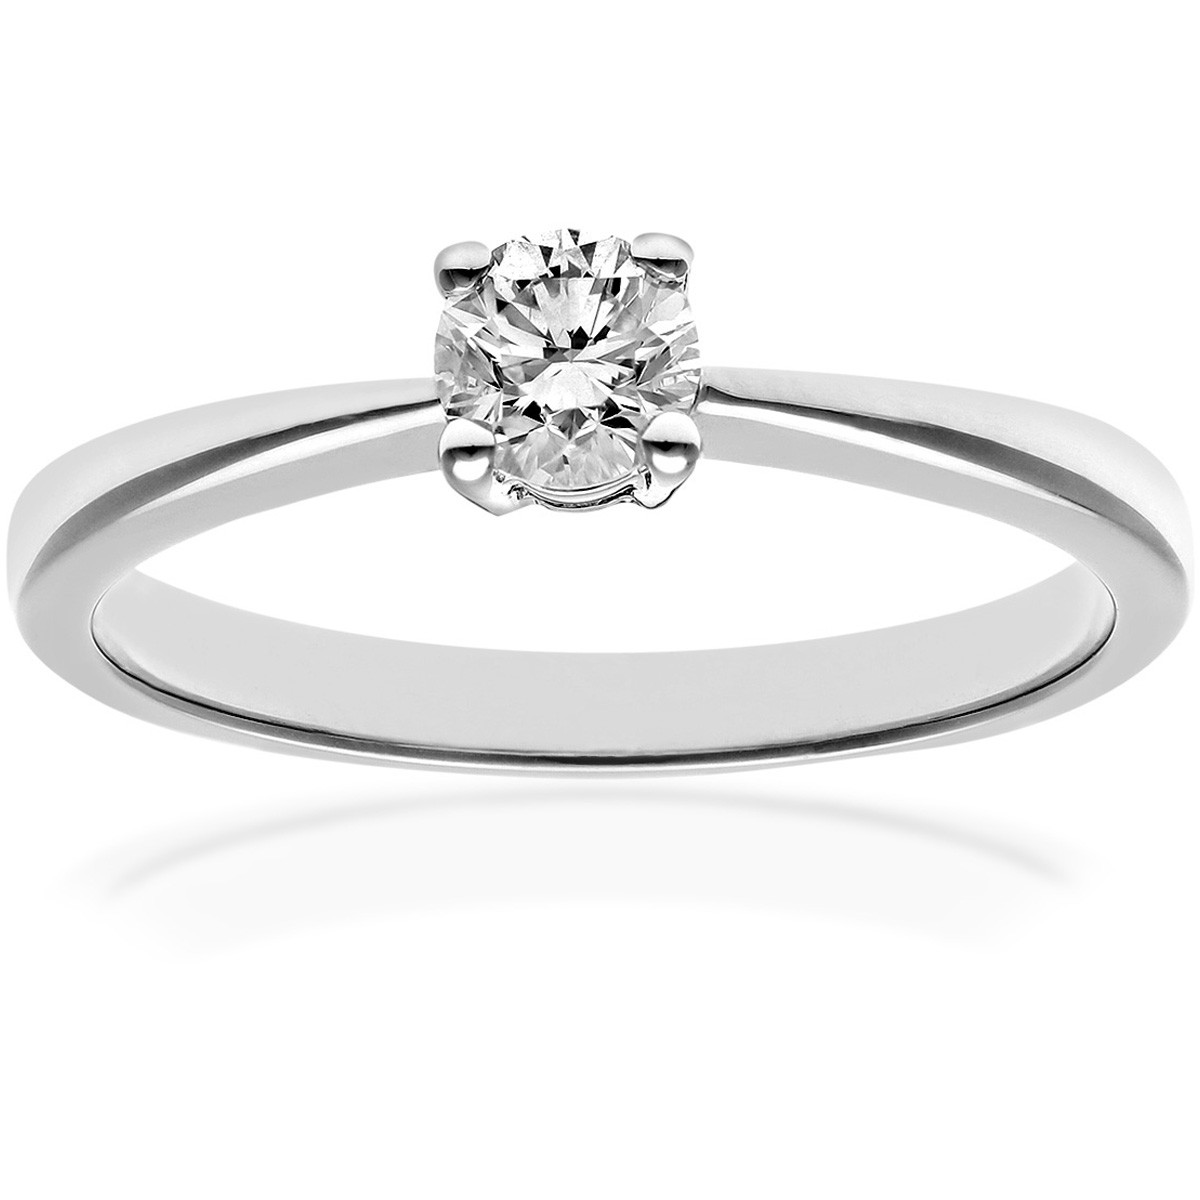 18CT WHITE GOLD 0.33CT DIAMOND SOLITAIRE RING